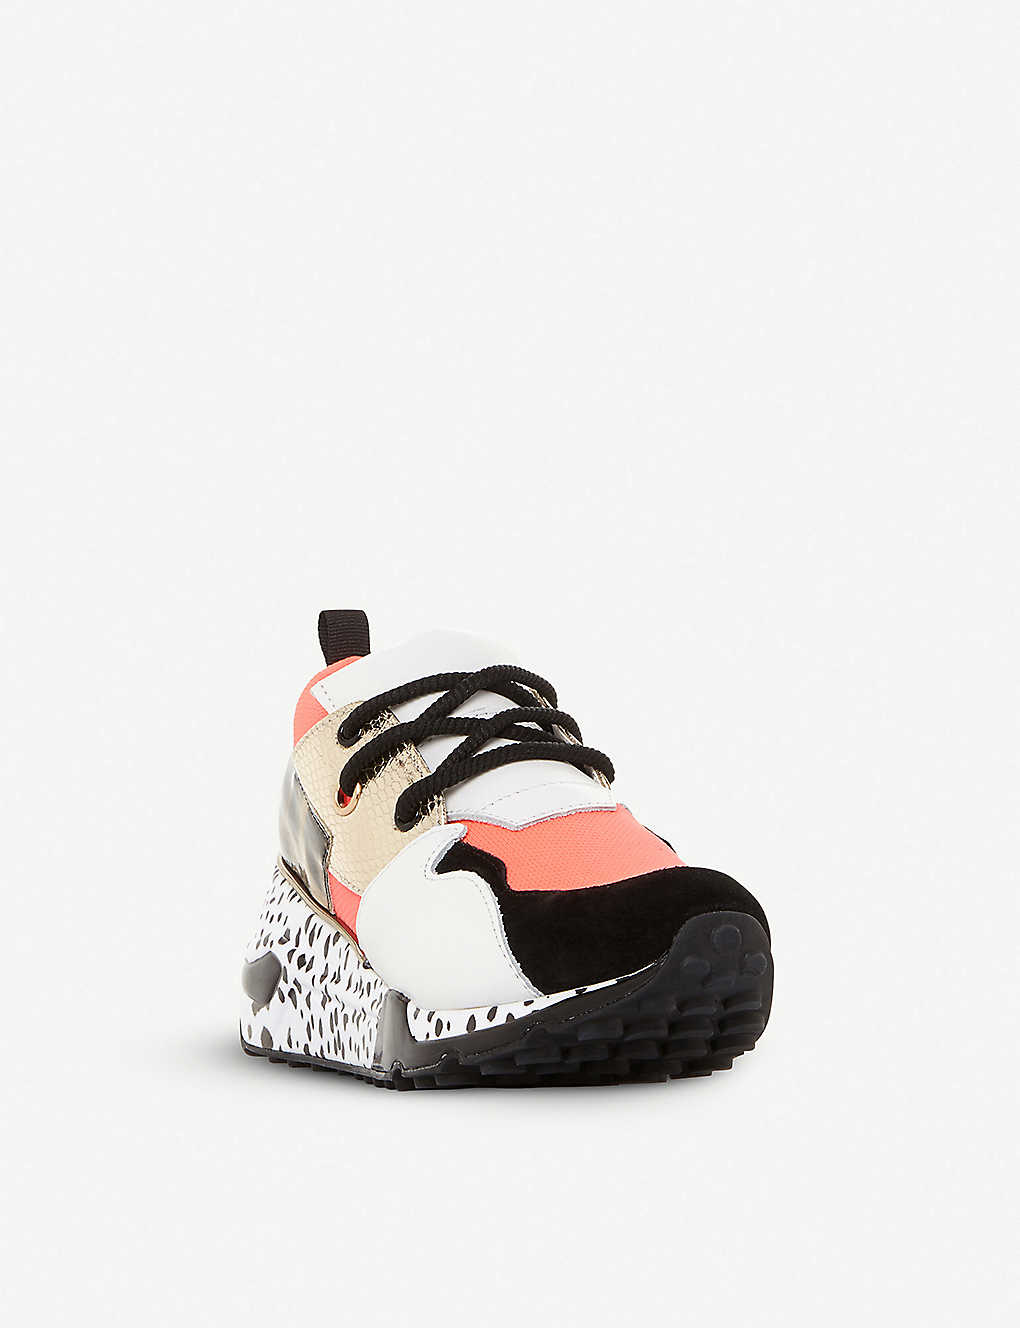 977056941c3 ... Cliff flatform mixed-print leather trainers - Coralsynthetic ...